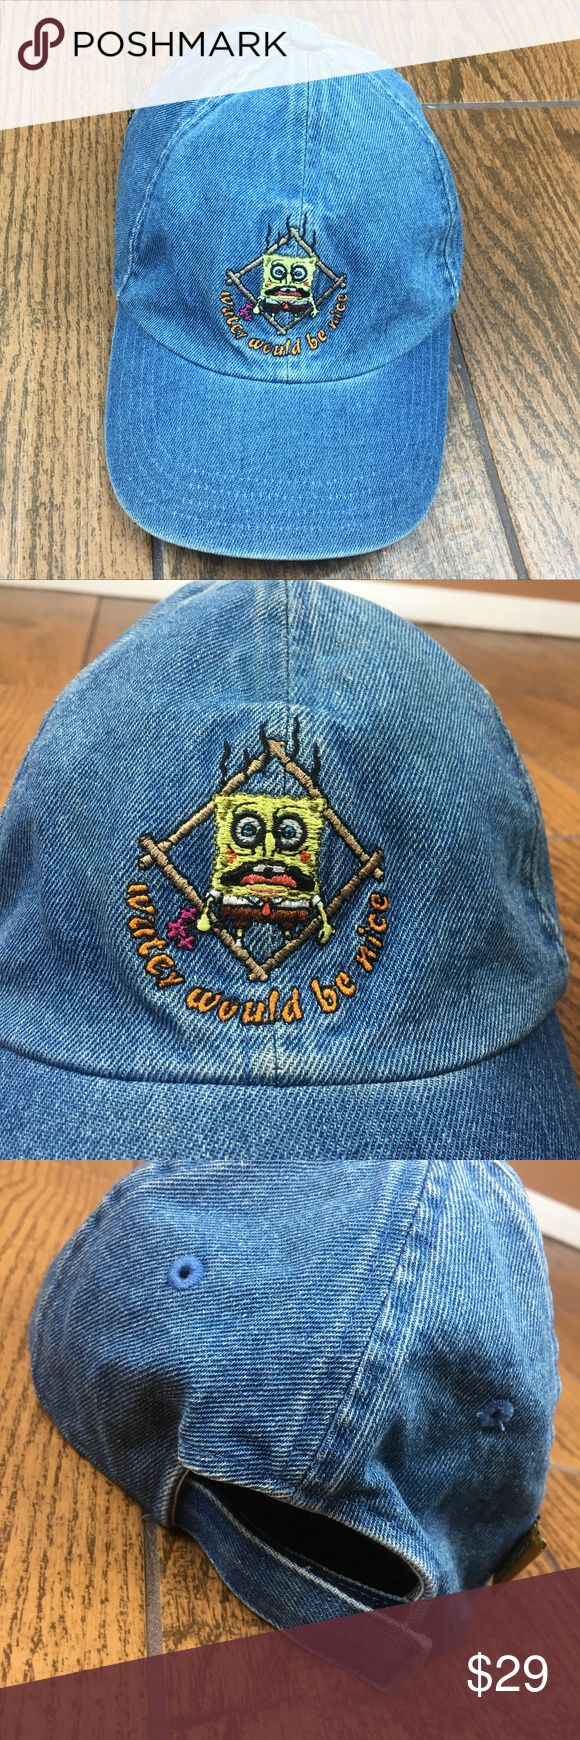 Spongebob Squarepants Denim Hat Nickelodeon Cap Nickelodeon Spongebob Squarepants Denim Baseball Hat Unisex Velcro back 'Water Would Be Nice' Embroidered graphic Circa 2004  OFFERS ACCEPTED Add to a bundle for an automatic discount  Colors may vary due to lighting, seller does its best to portray the right color. Please inspect all photos.  #K025 Nickelodeon Accessories Hats